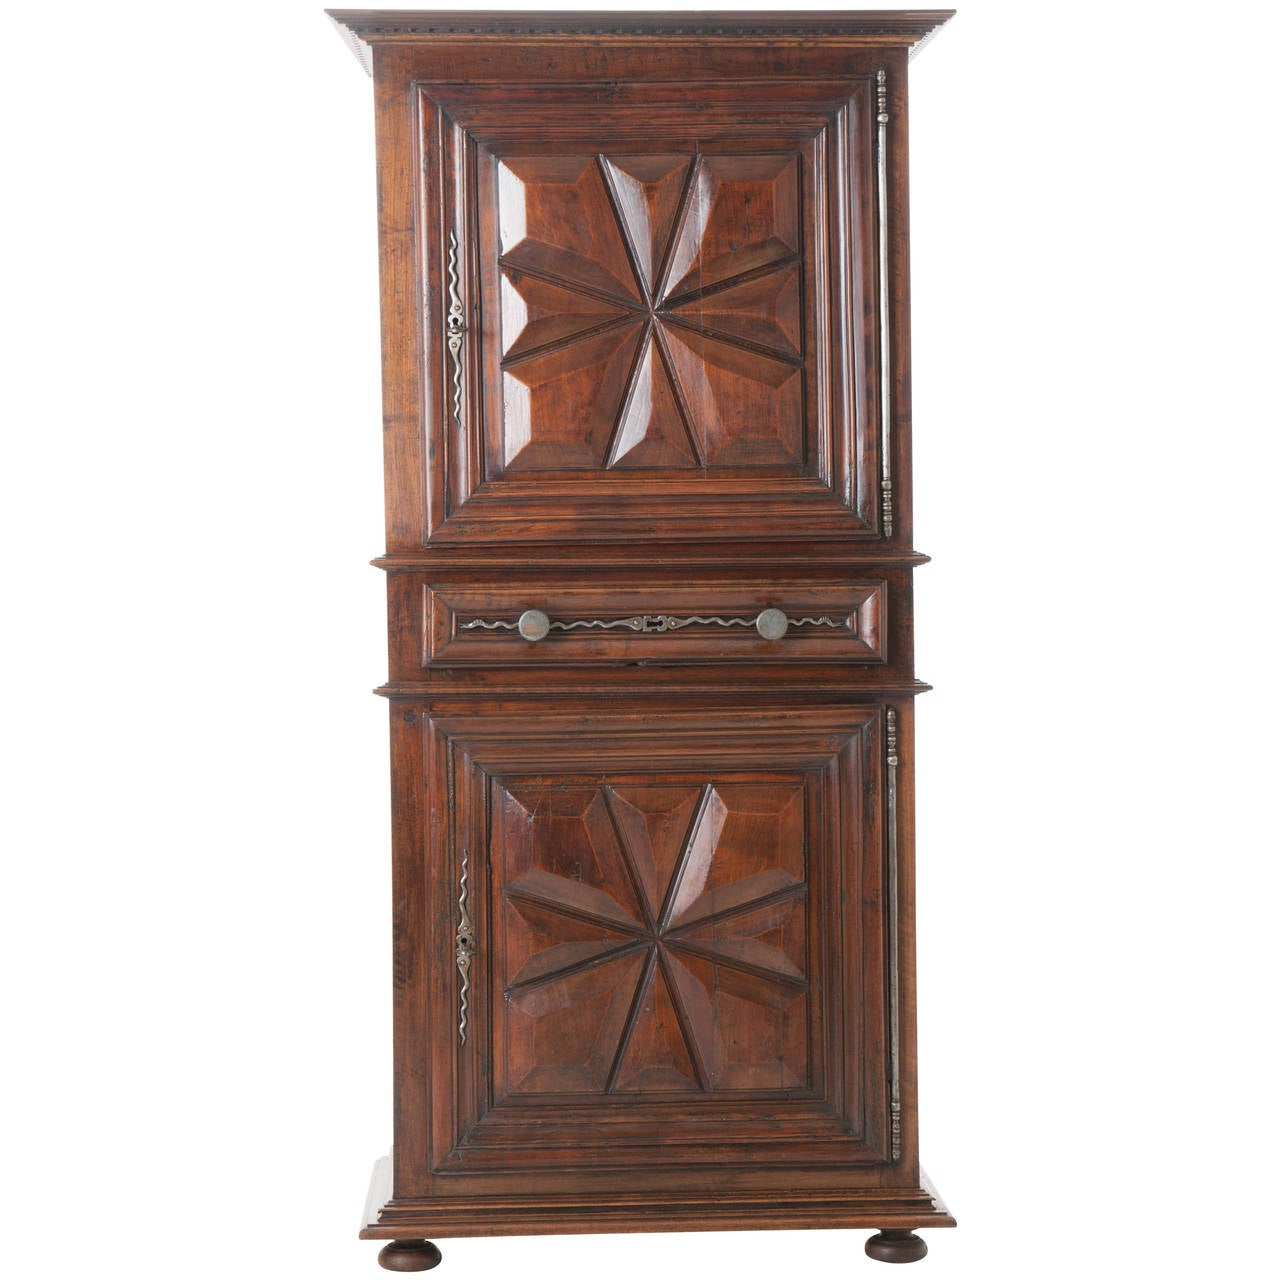 French 19th century louis xiii homme debout or cupboard at for Homme debout meuble